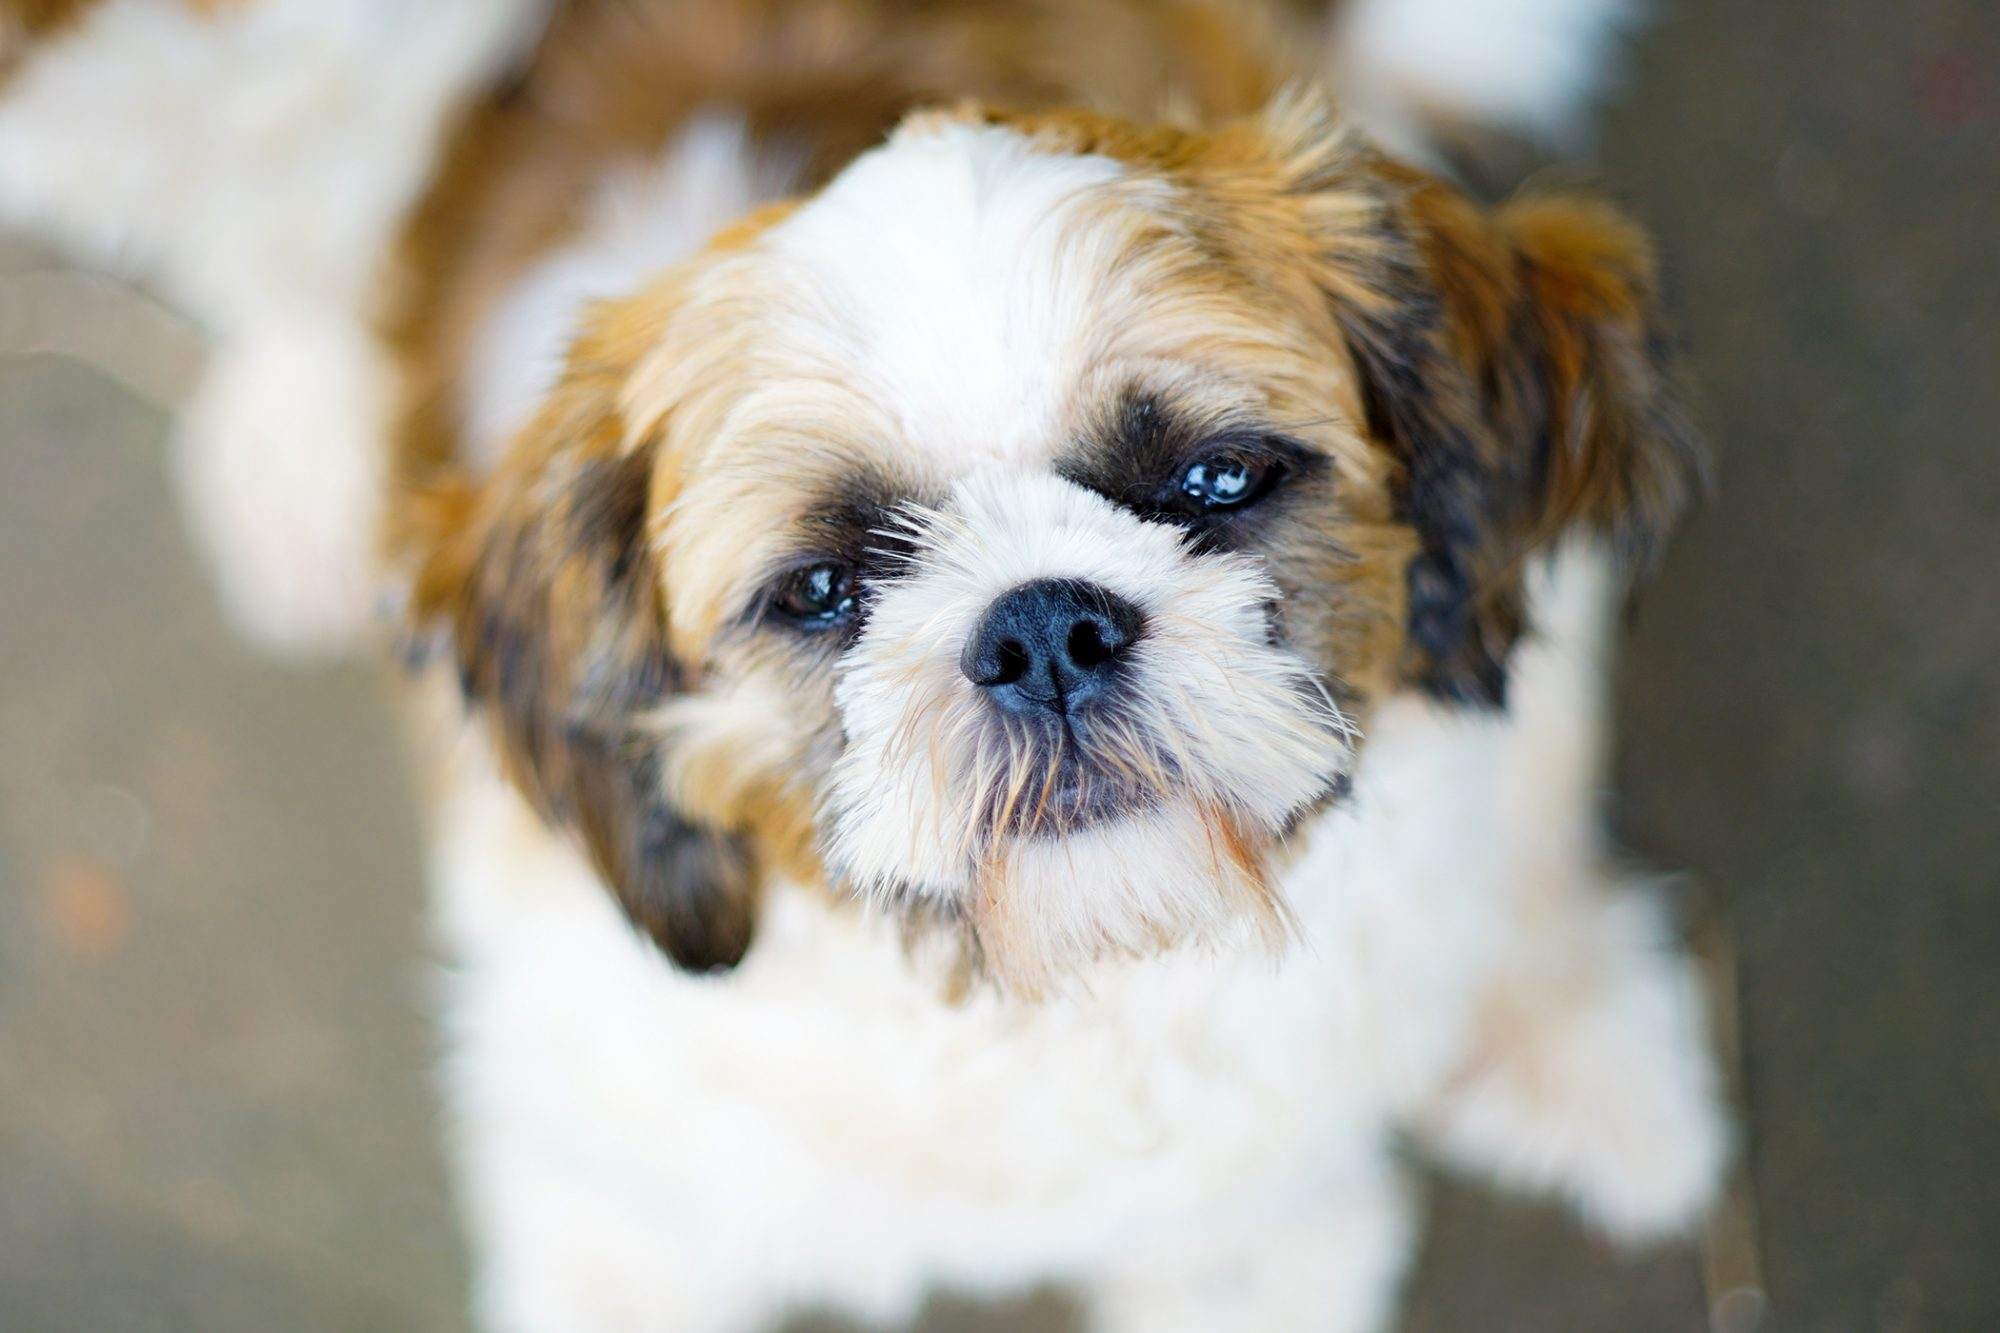 White and brown shorkie looks up at camera